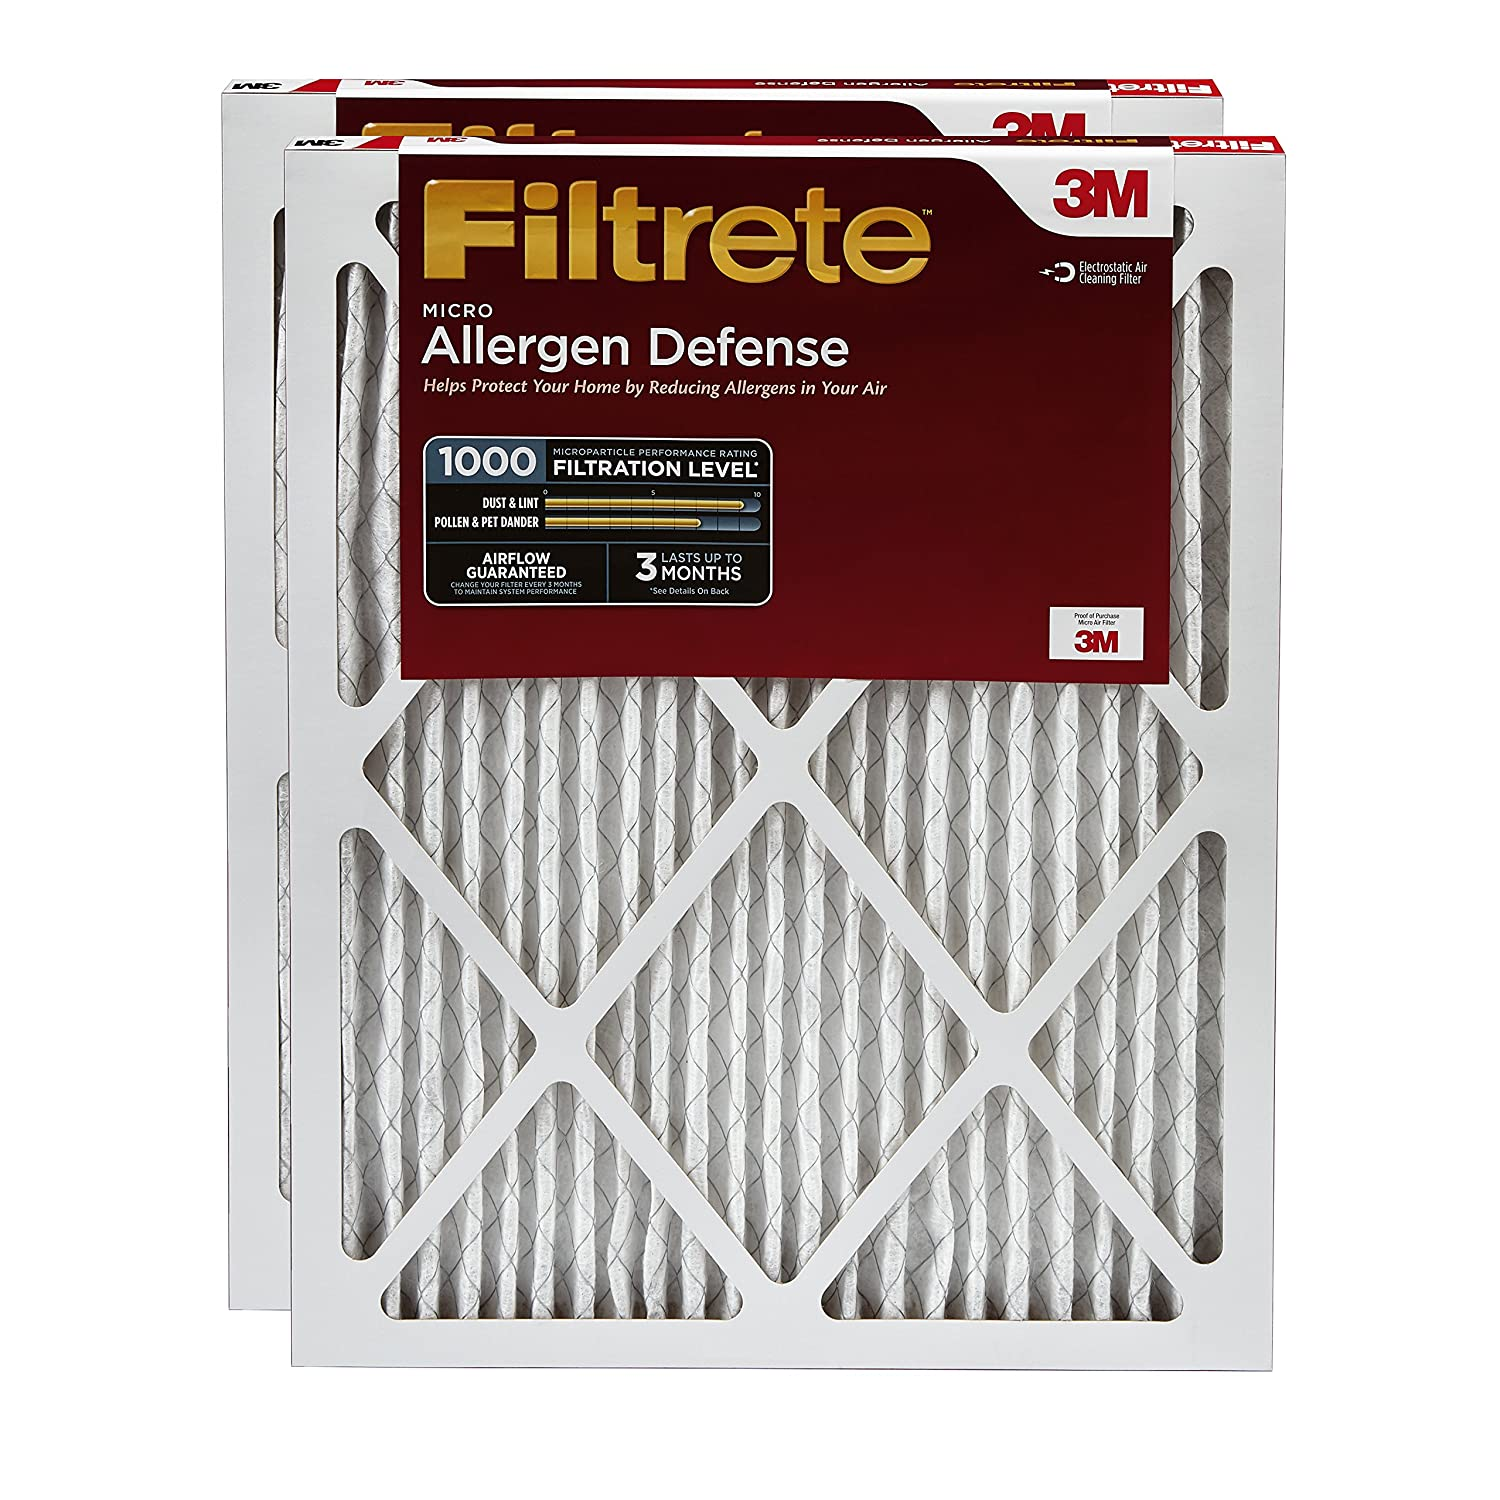 3. Filtrete 16x20x1, AC Furnace Air Filter, MPR 1000, Micro Allergen Defense, 2-Pack